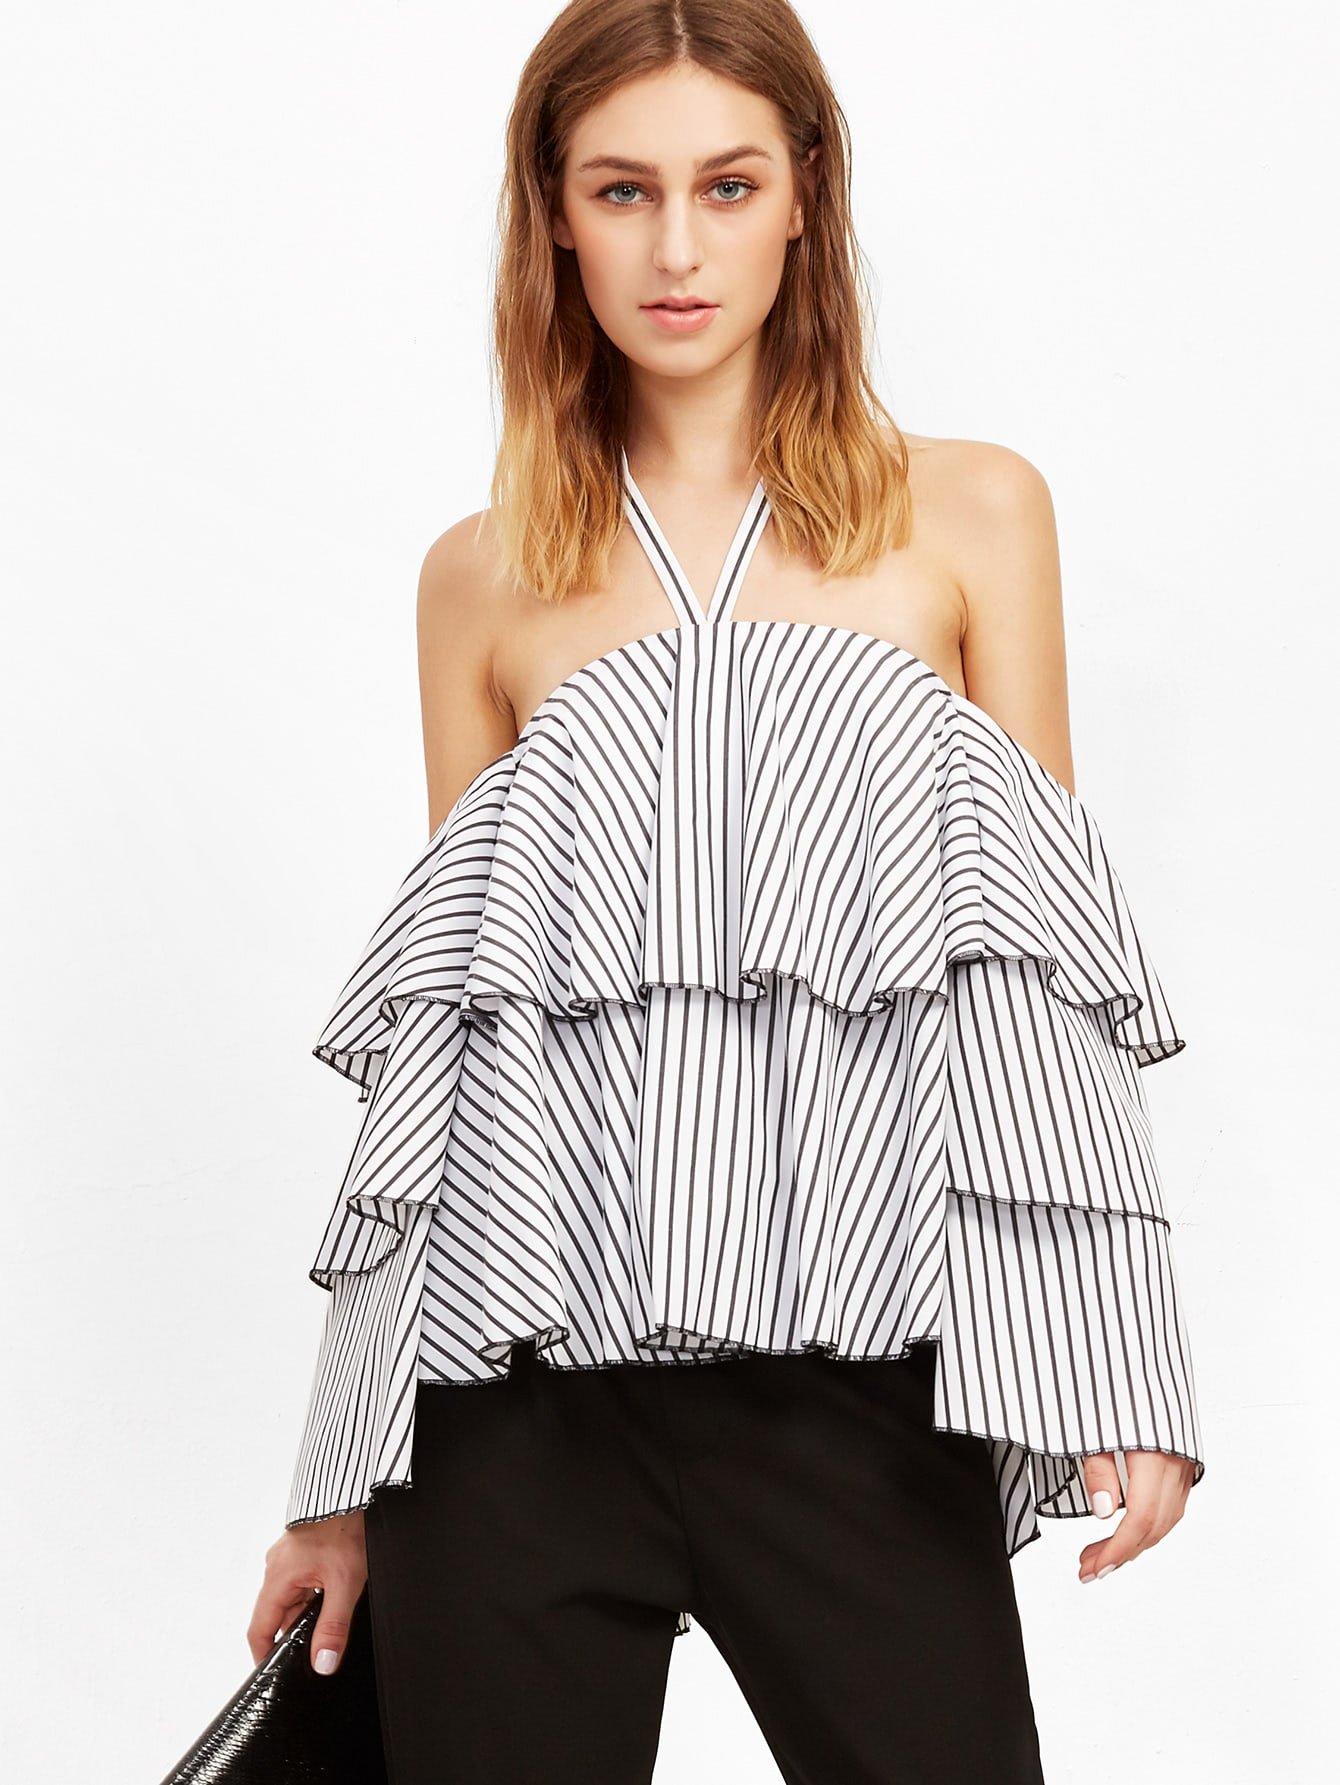 Tiered Frill Striped Top blouse161012708